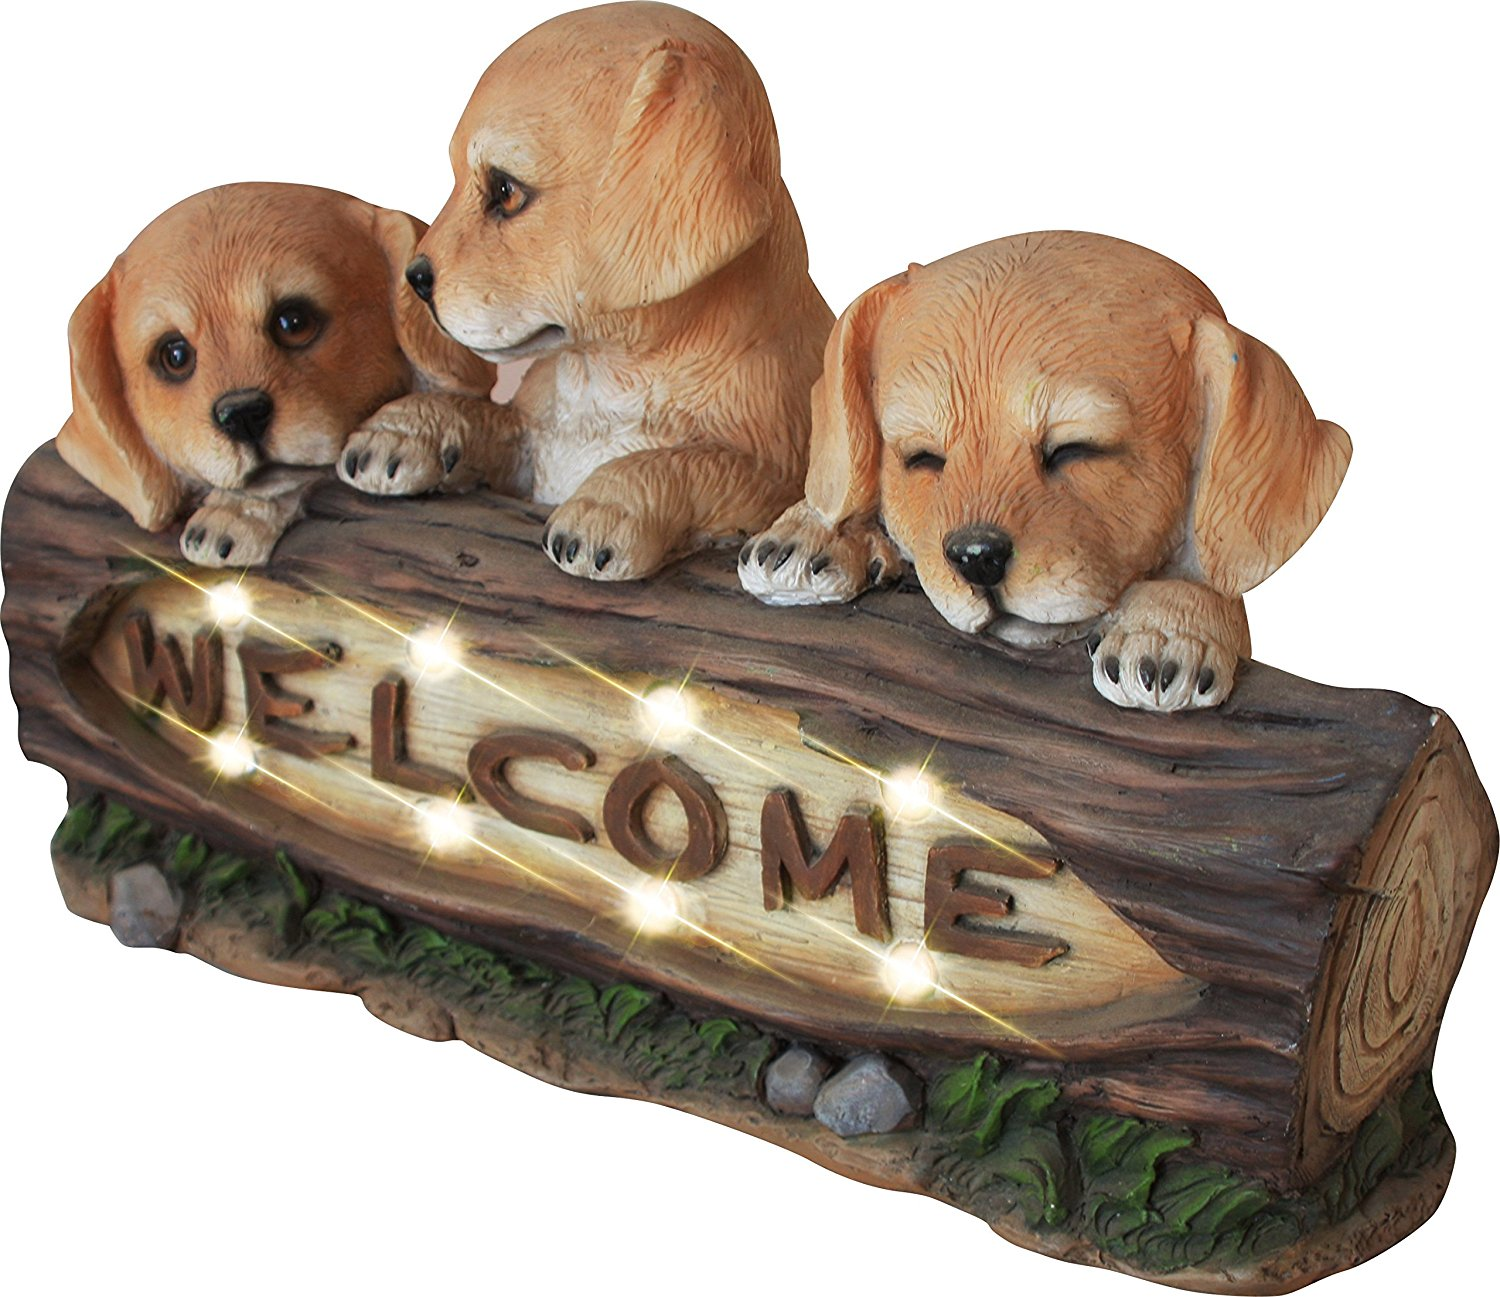 Welcome Statues Garden Garden Statues Welcome Dogs With Solar Powered Led Lights 15 Inch Puppy Dog Decor For Door Patio Yard